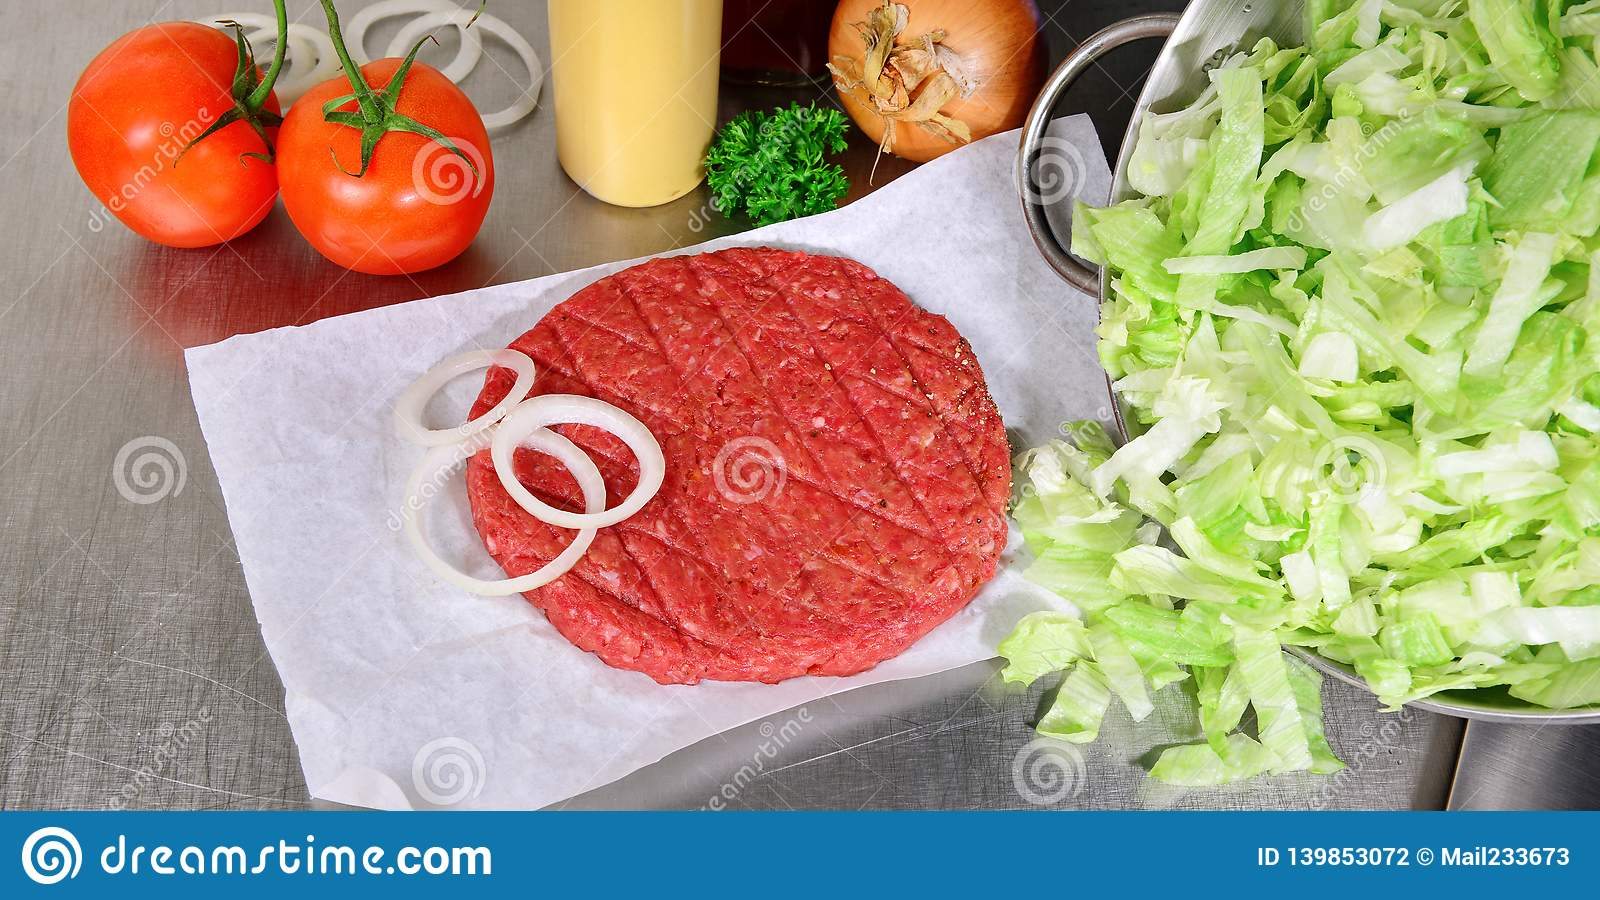 Hamburger Patty - Fast Food